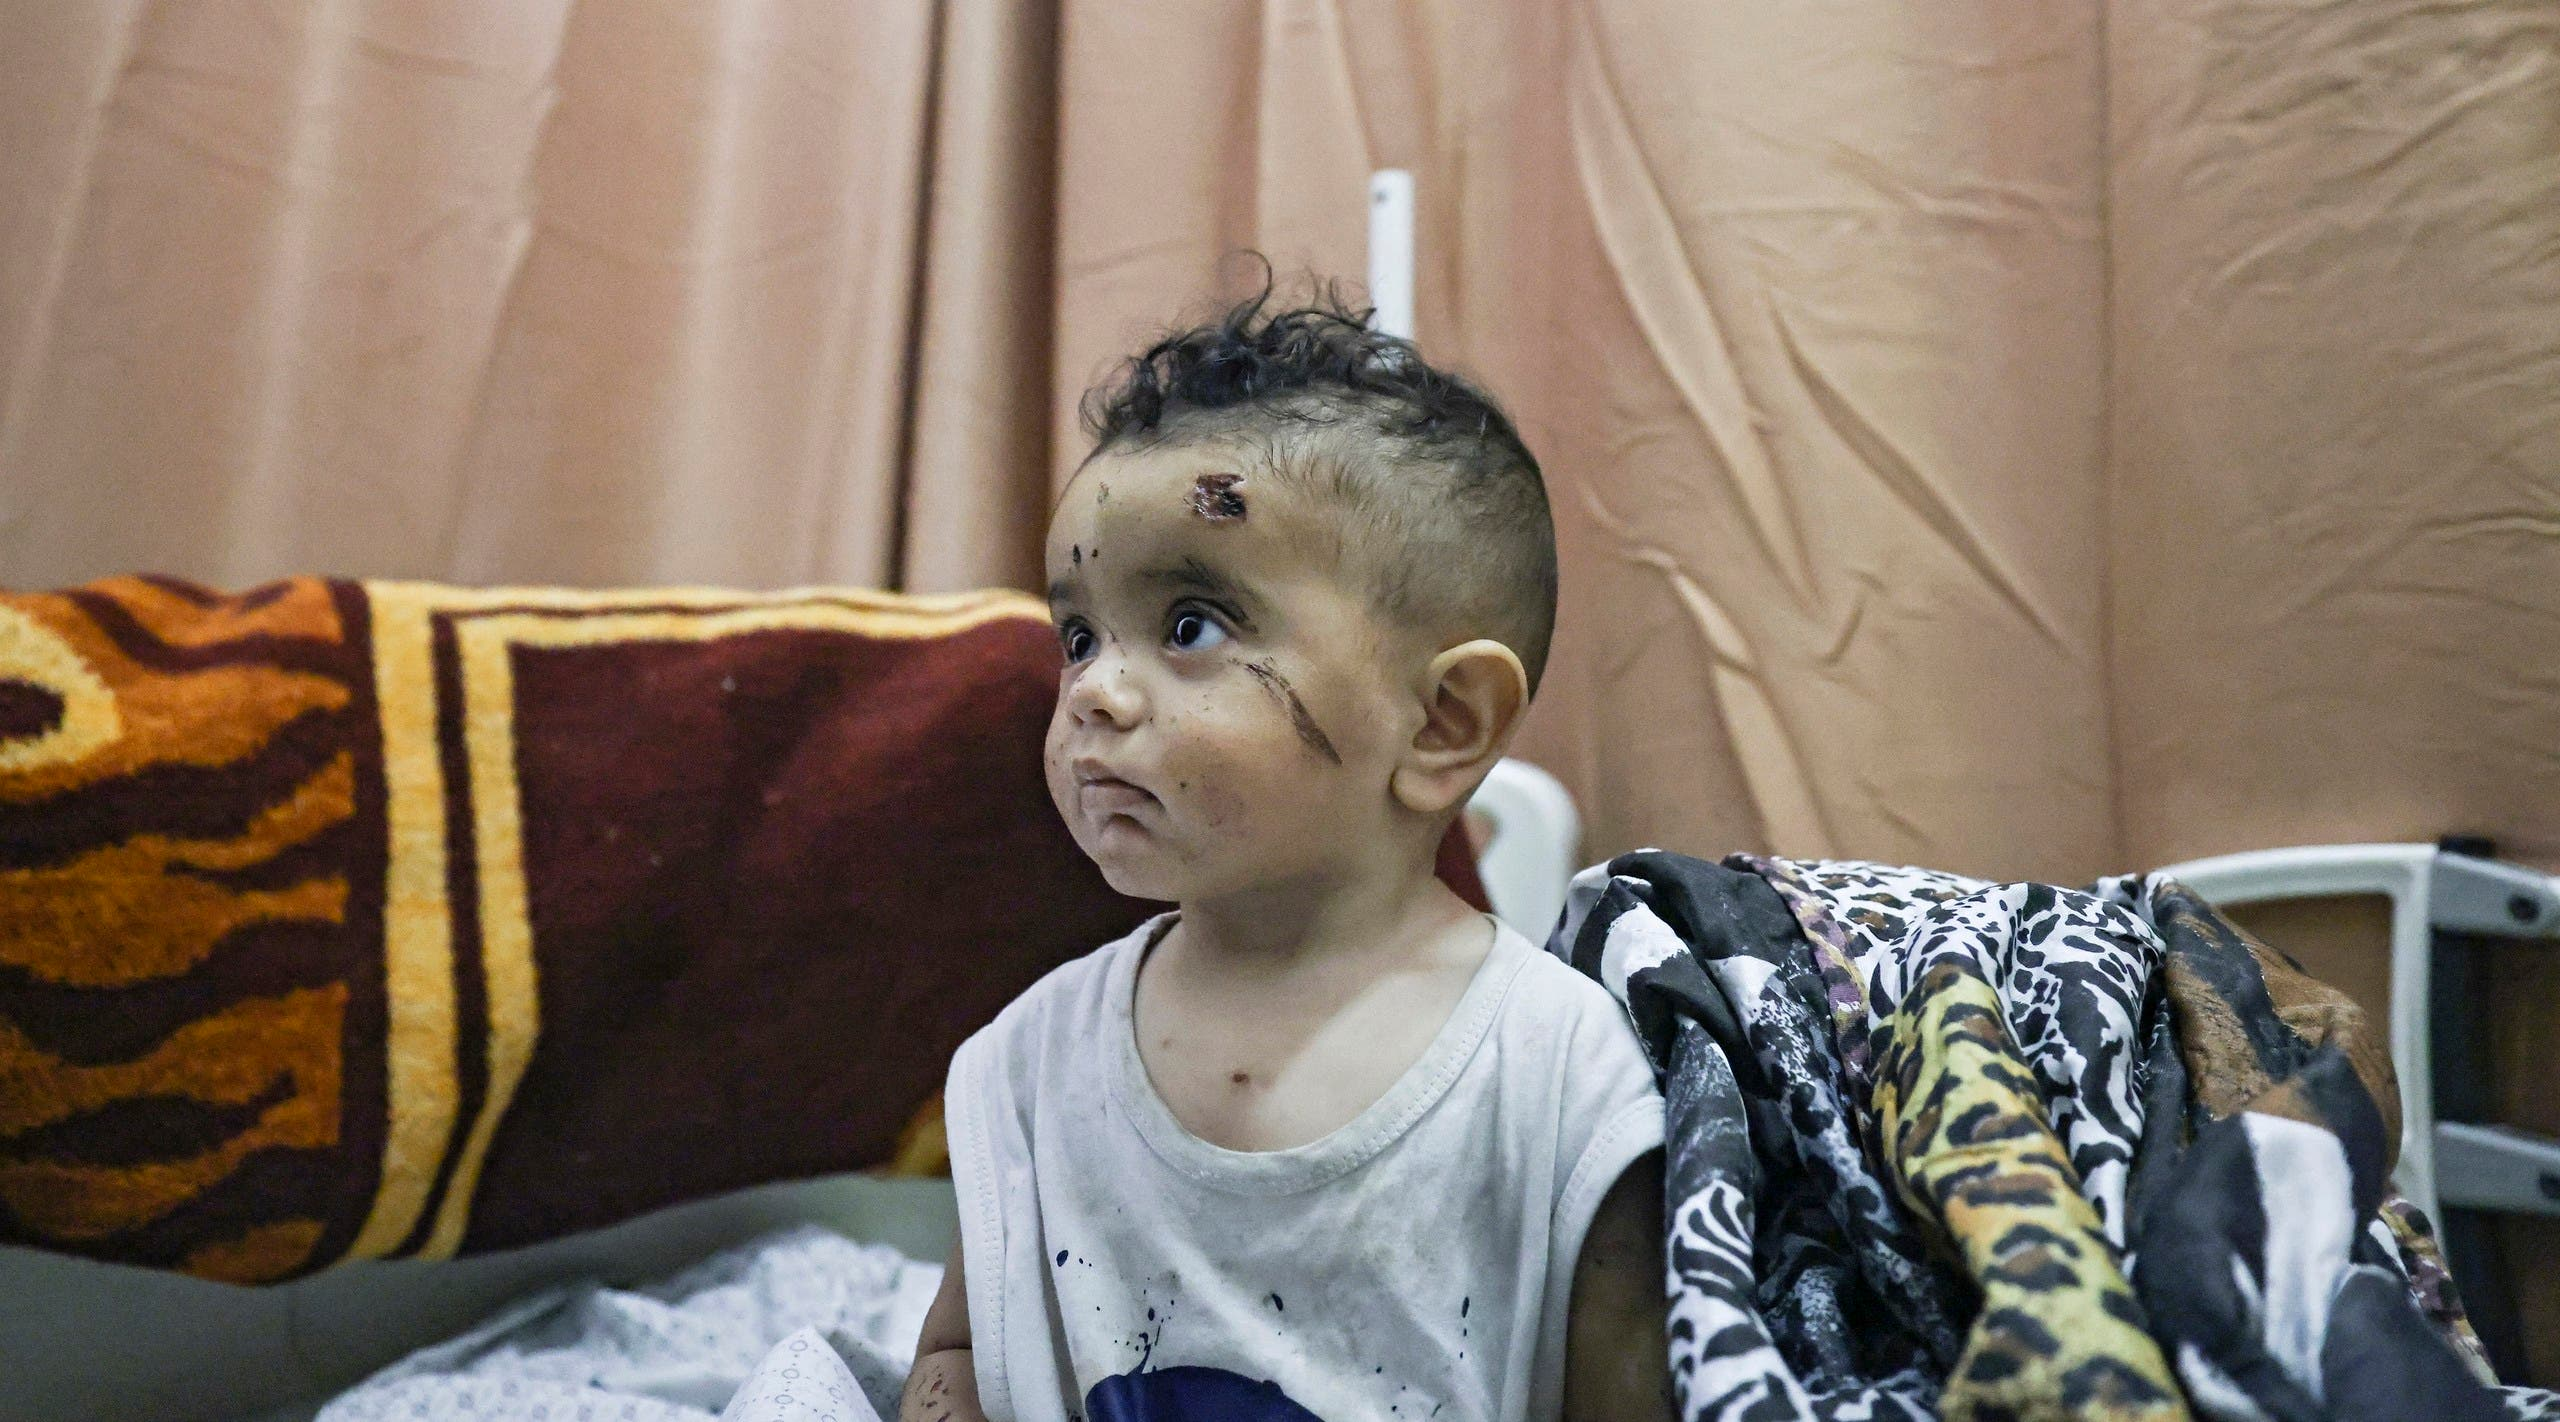 A Palestinian child, who was wounded in overnight Israeli air strikes on the Gaza Strip, receives treatment at Al-Shifa Hospital in the Palestinian enclave on May 16, 2021. (AFP)